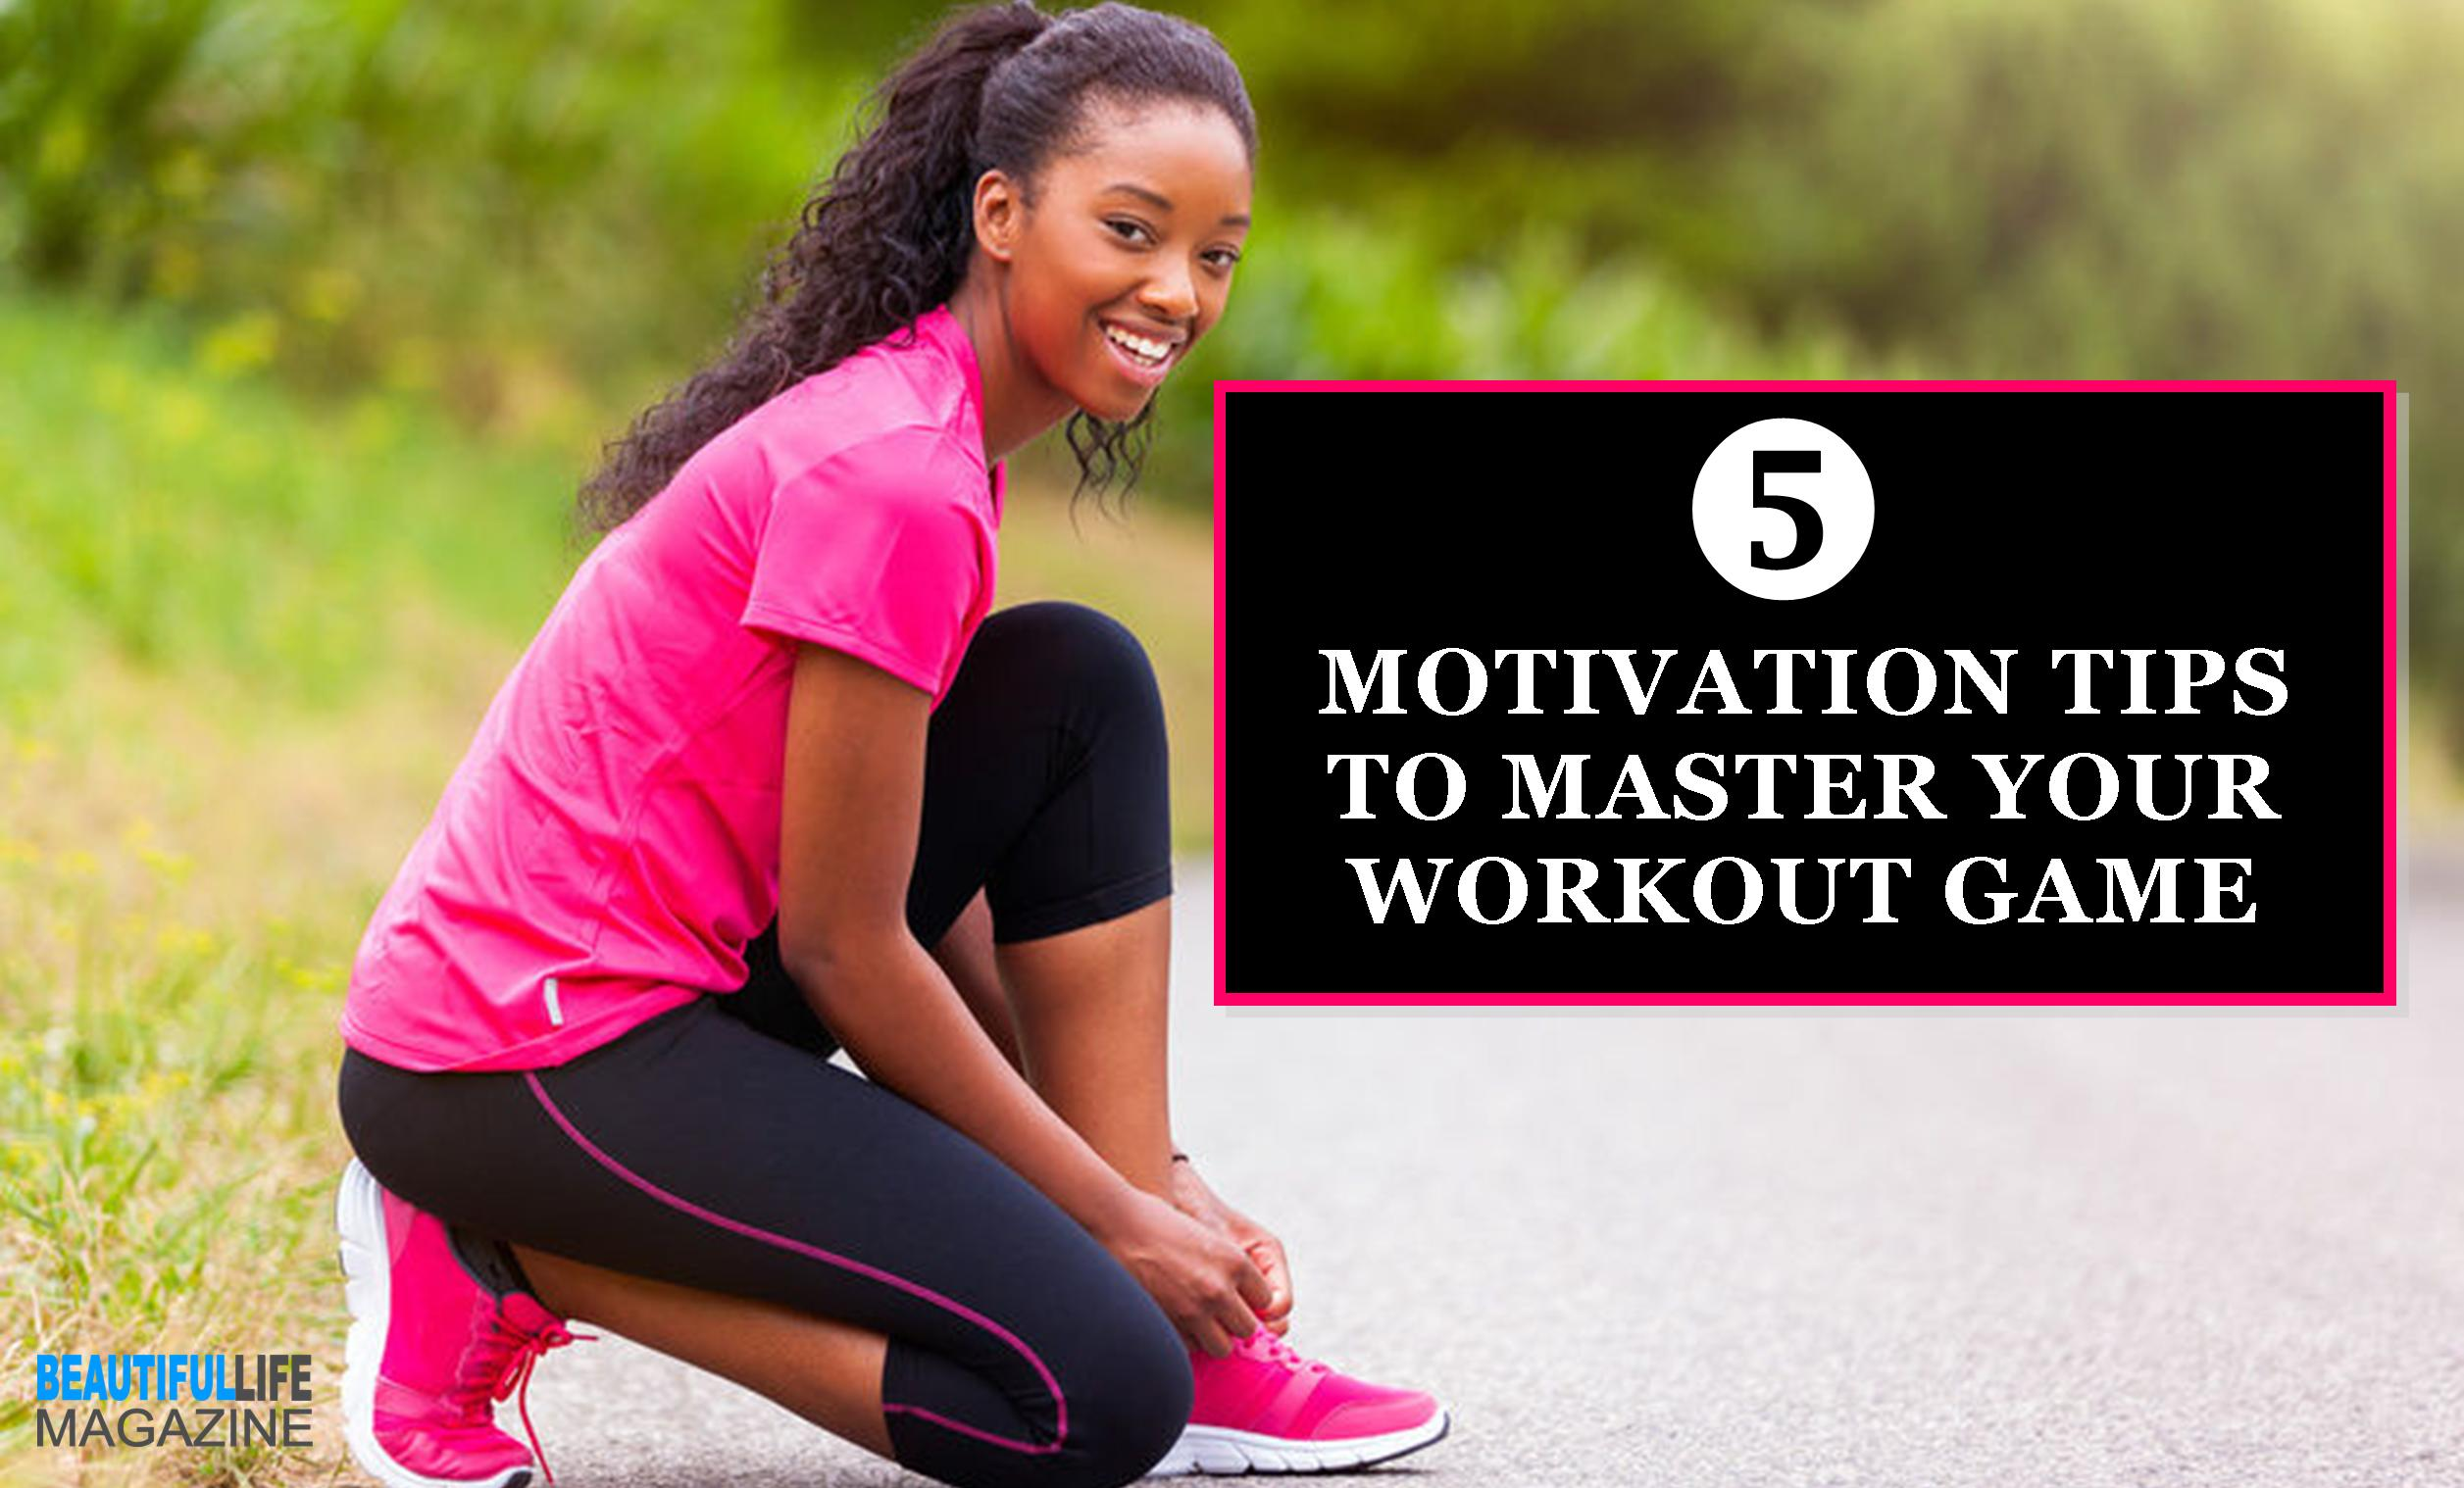 Whether you're following a workout guide or just getting going with a new workout routine, these tips will be helpful in mastering the motivation game.